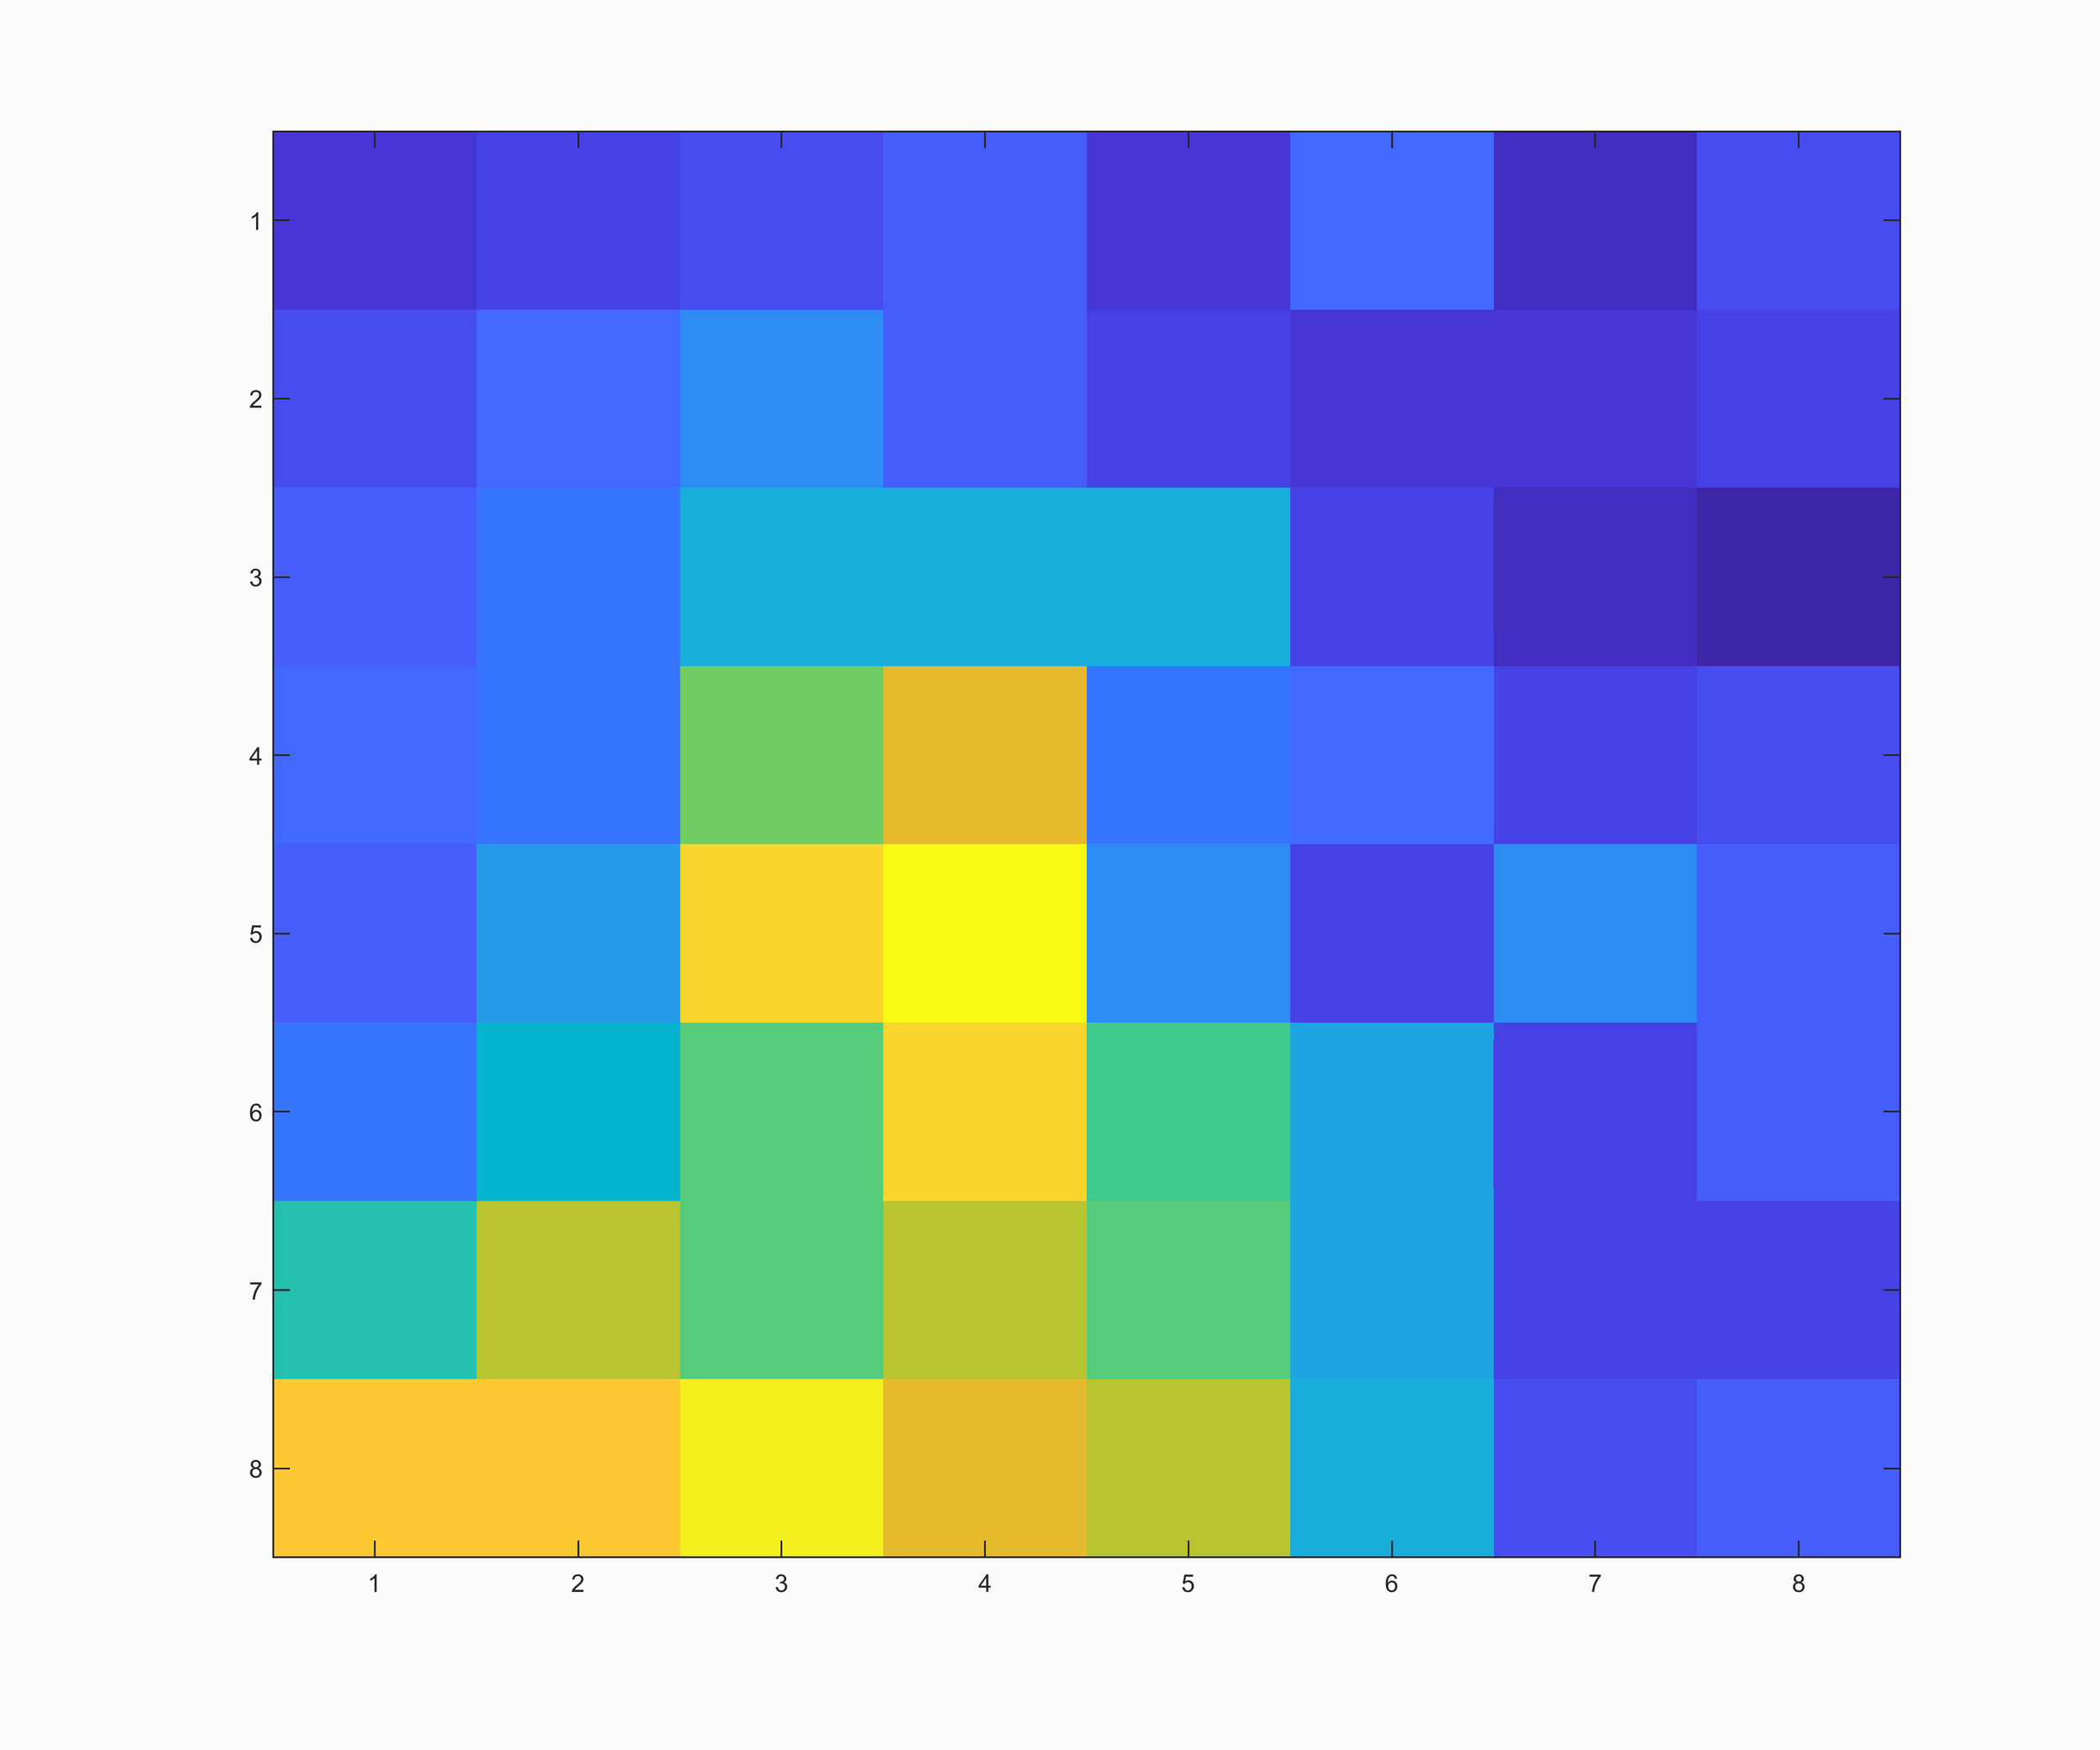 matlab_serial_AMG8833_8_by_8.png